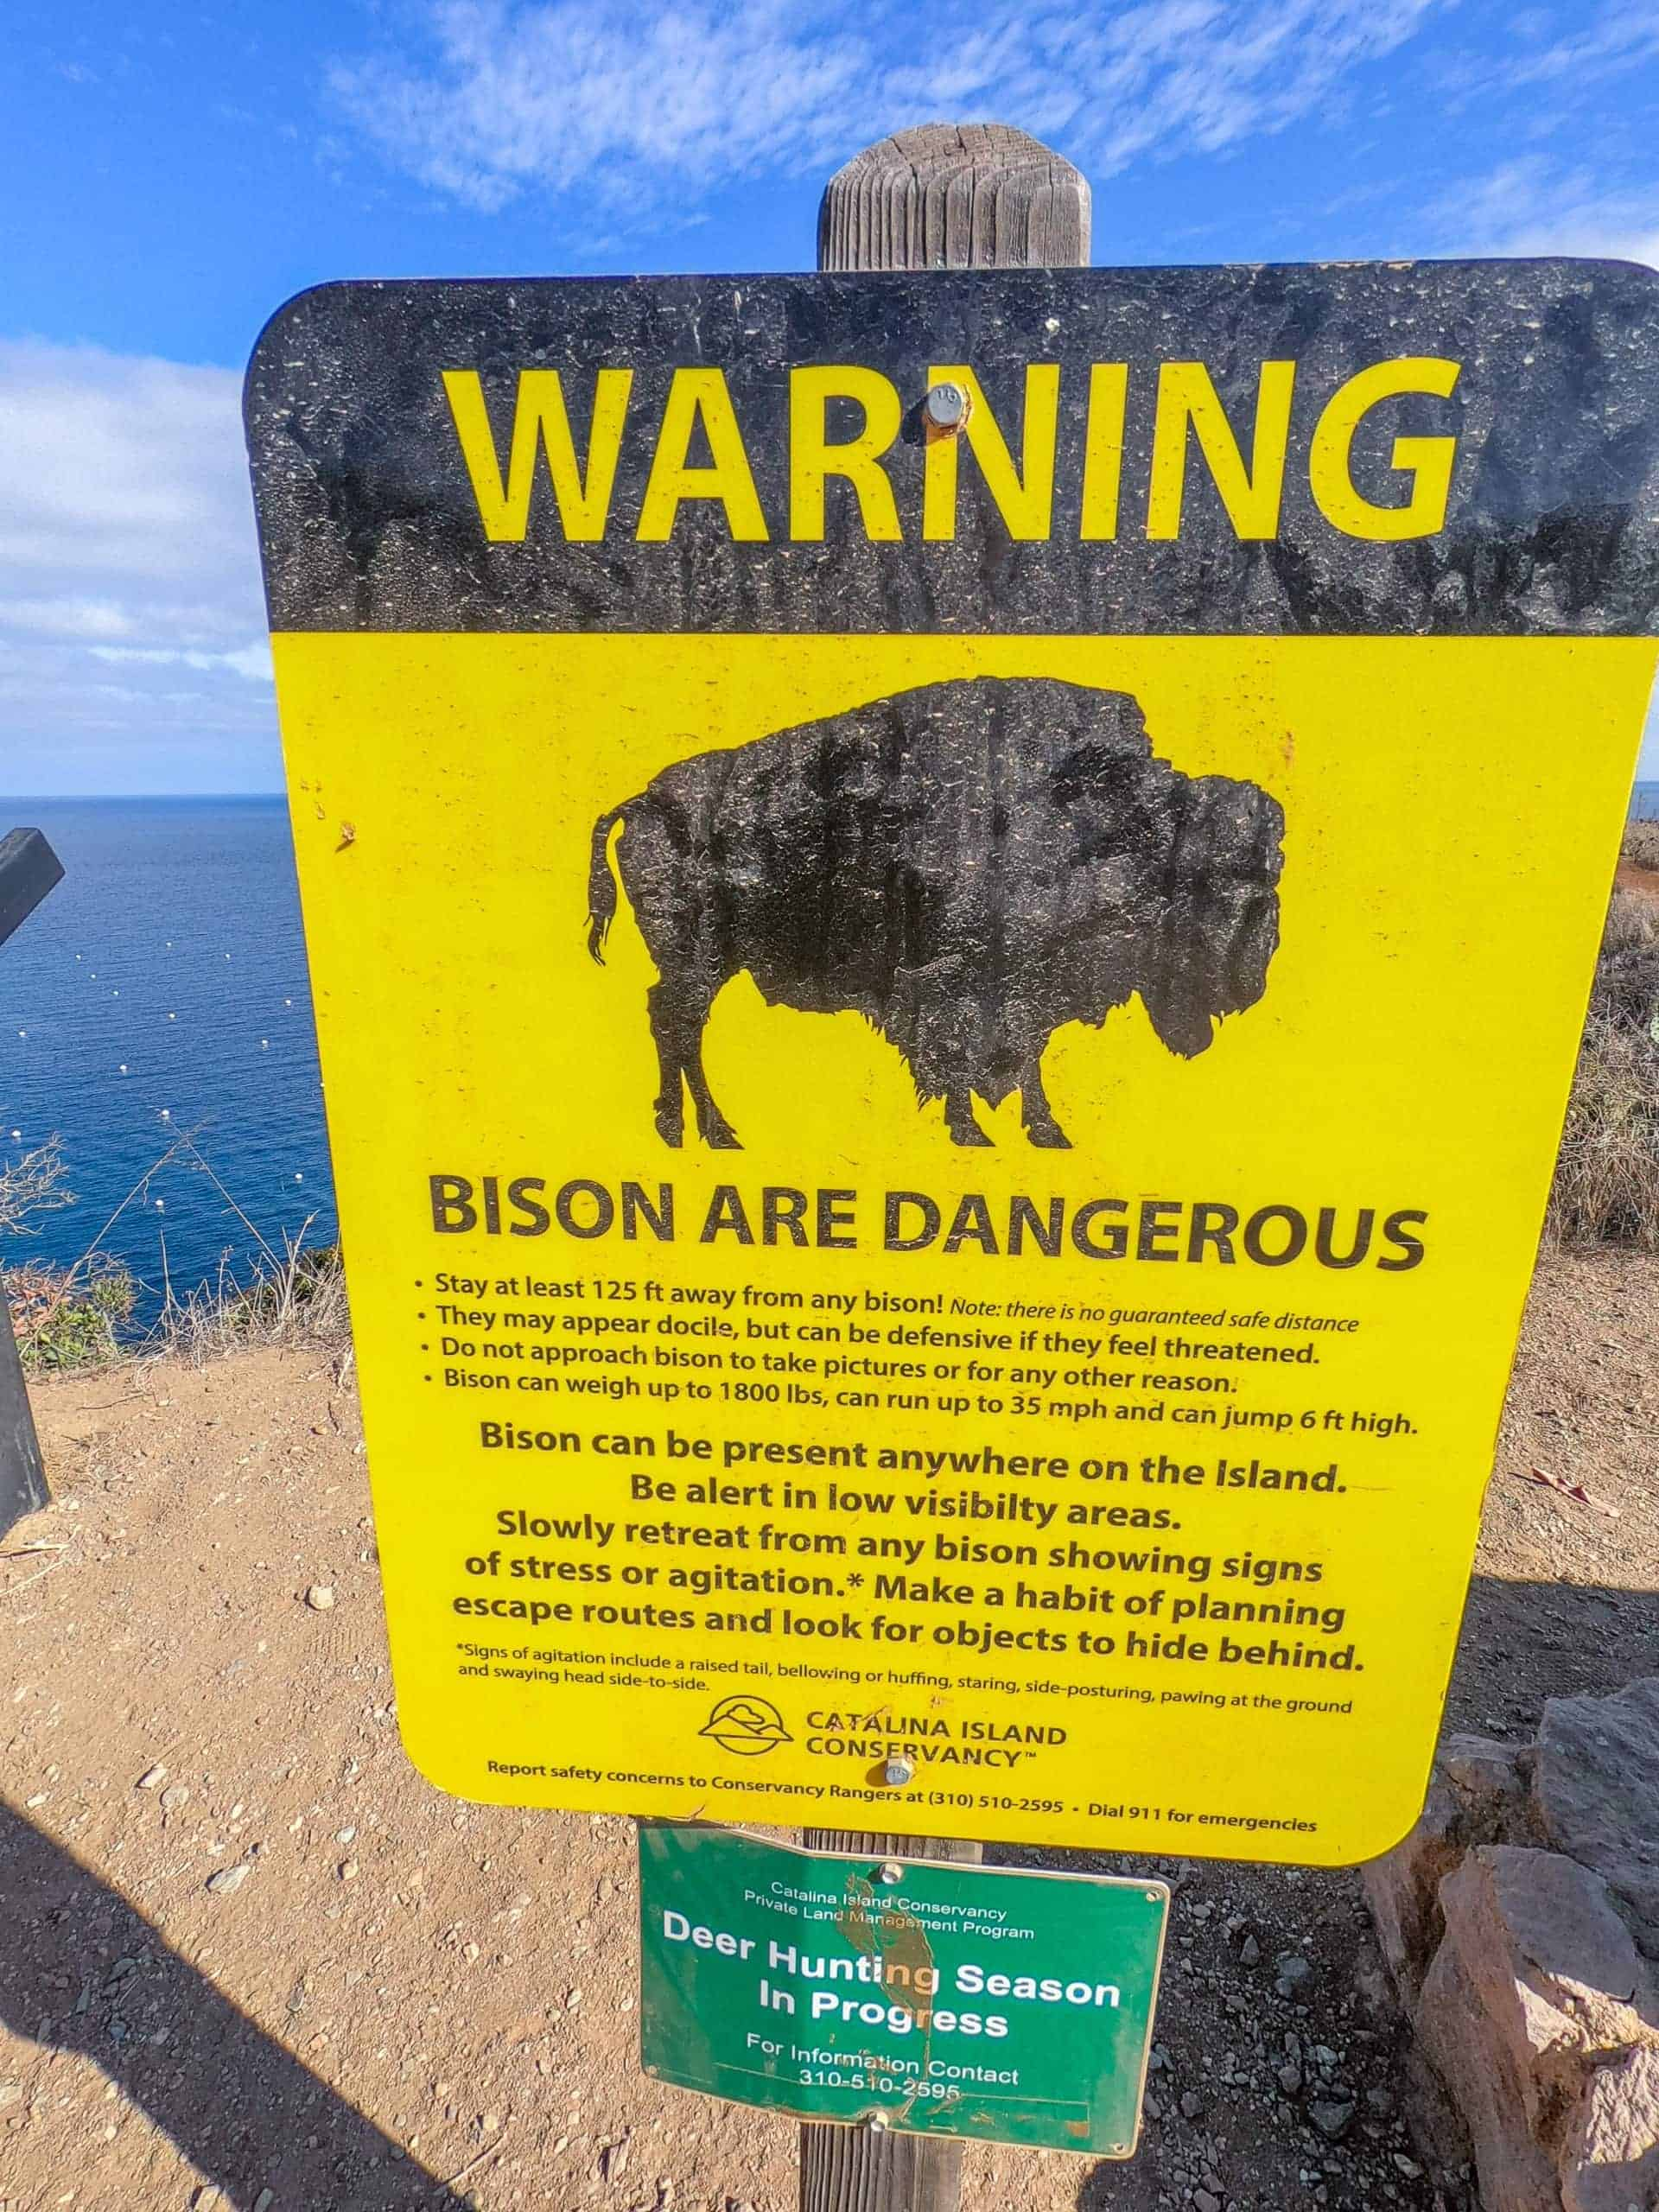 Bison on Catalina Island